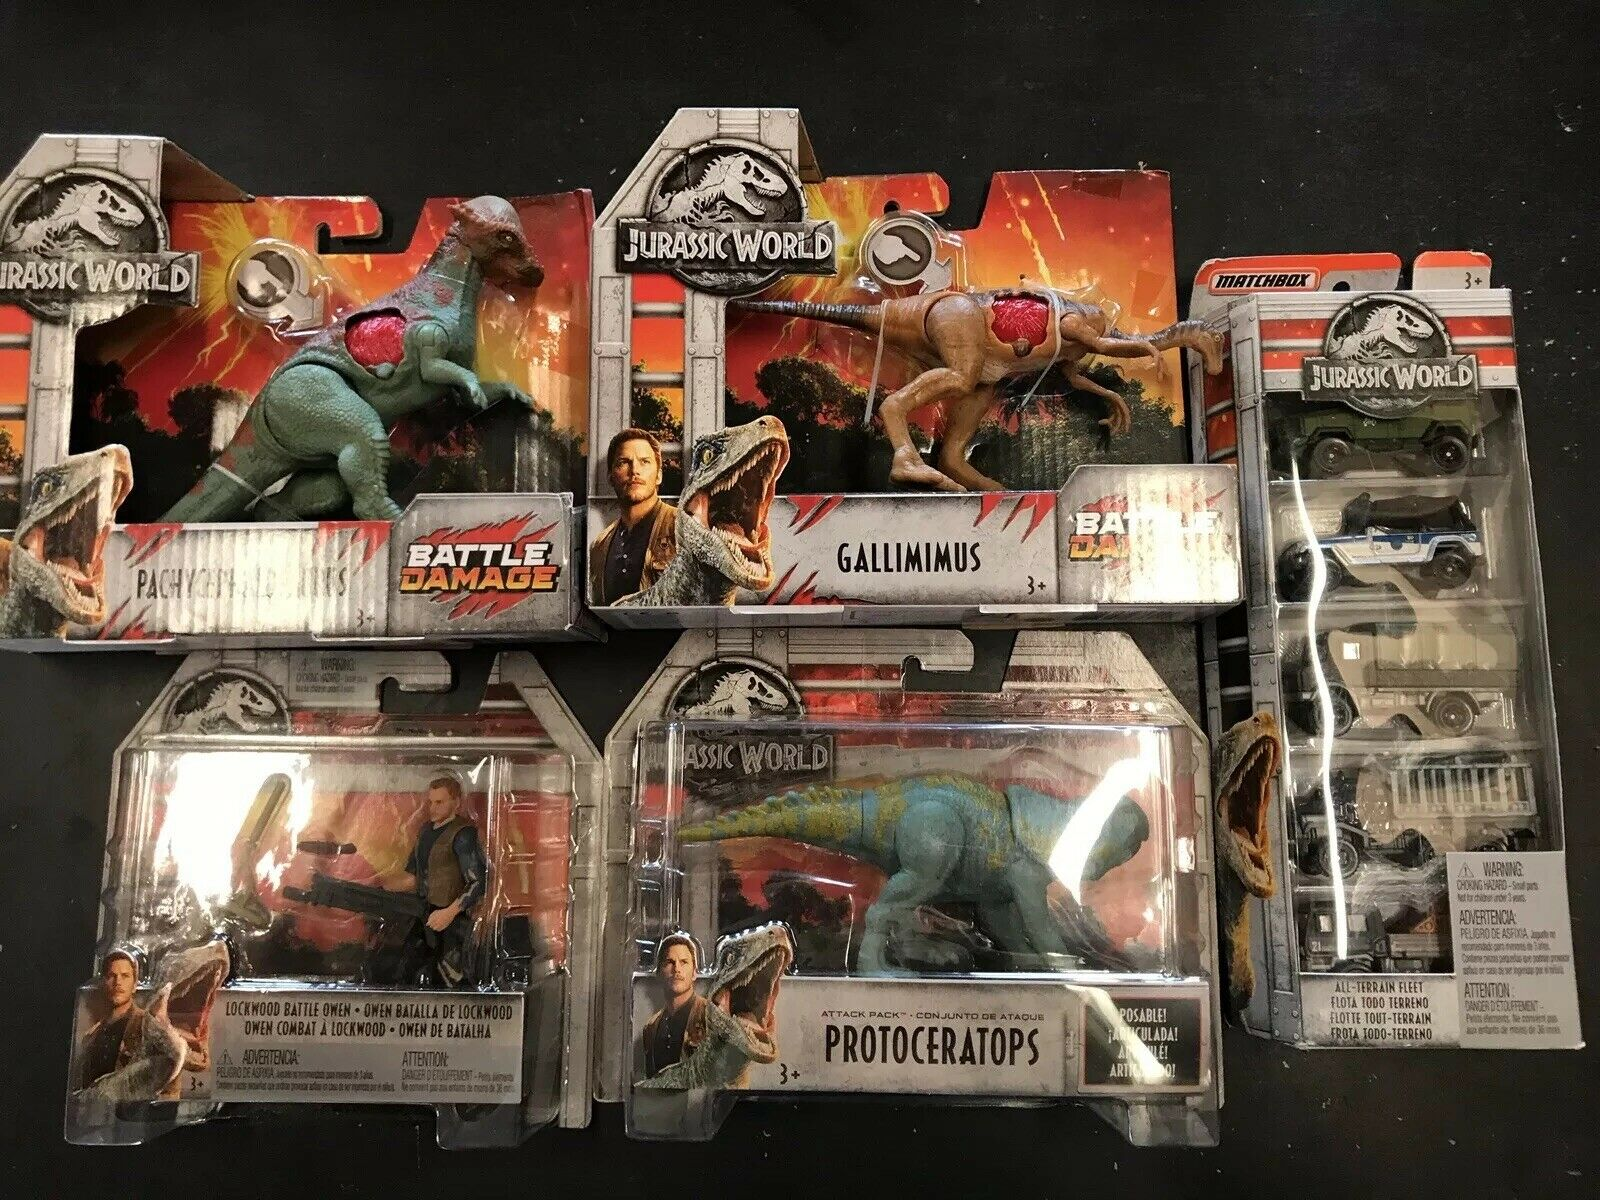 LOT of 5 Jurassic World Toys Gallimimus Protoceratops Owen Matchbox Cars NEW